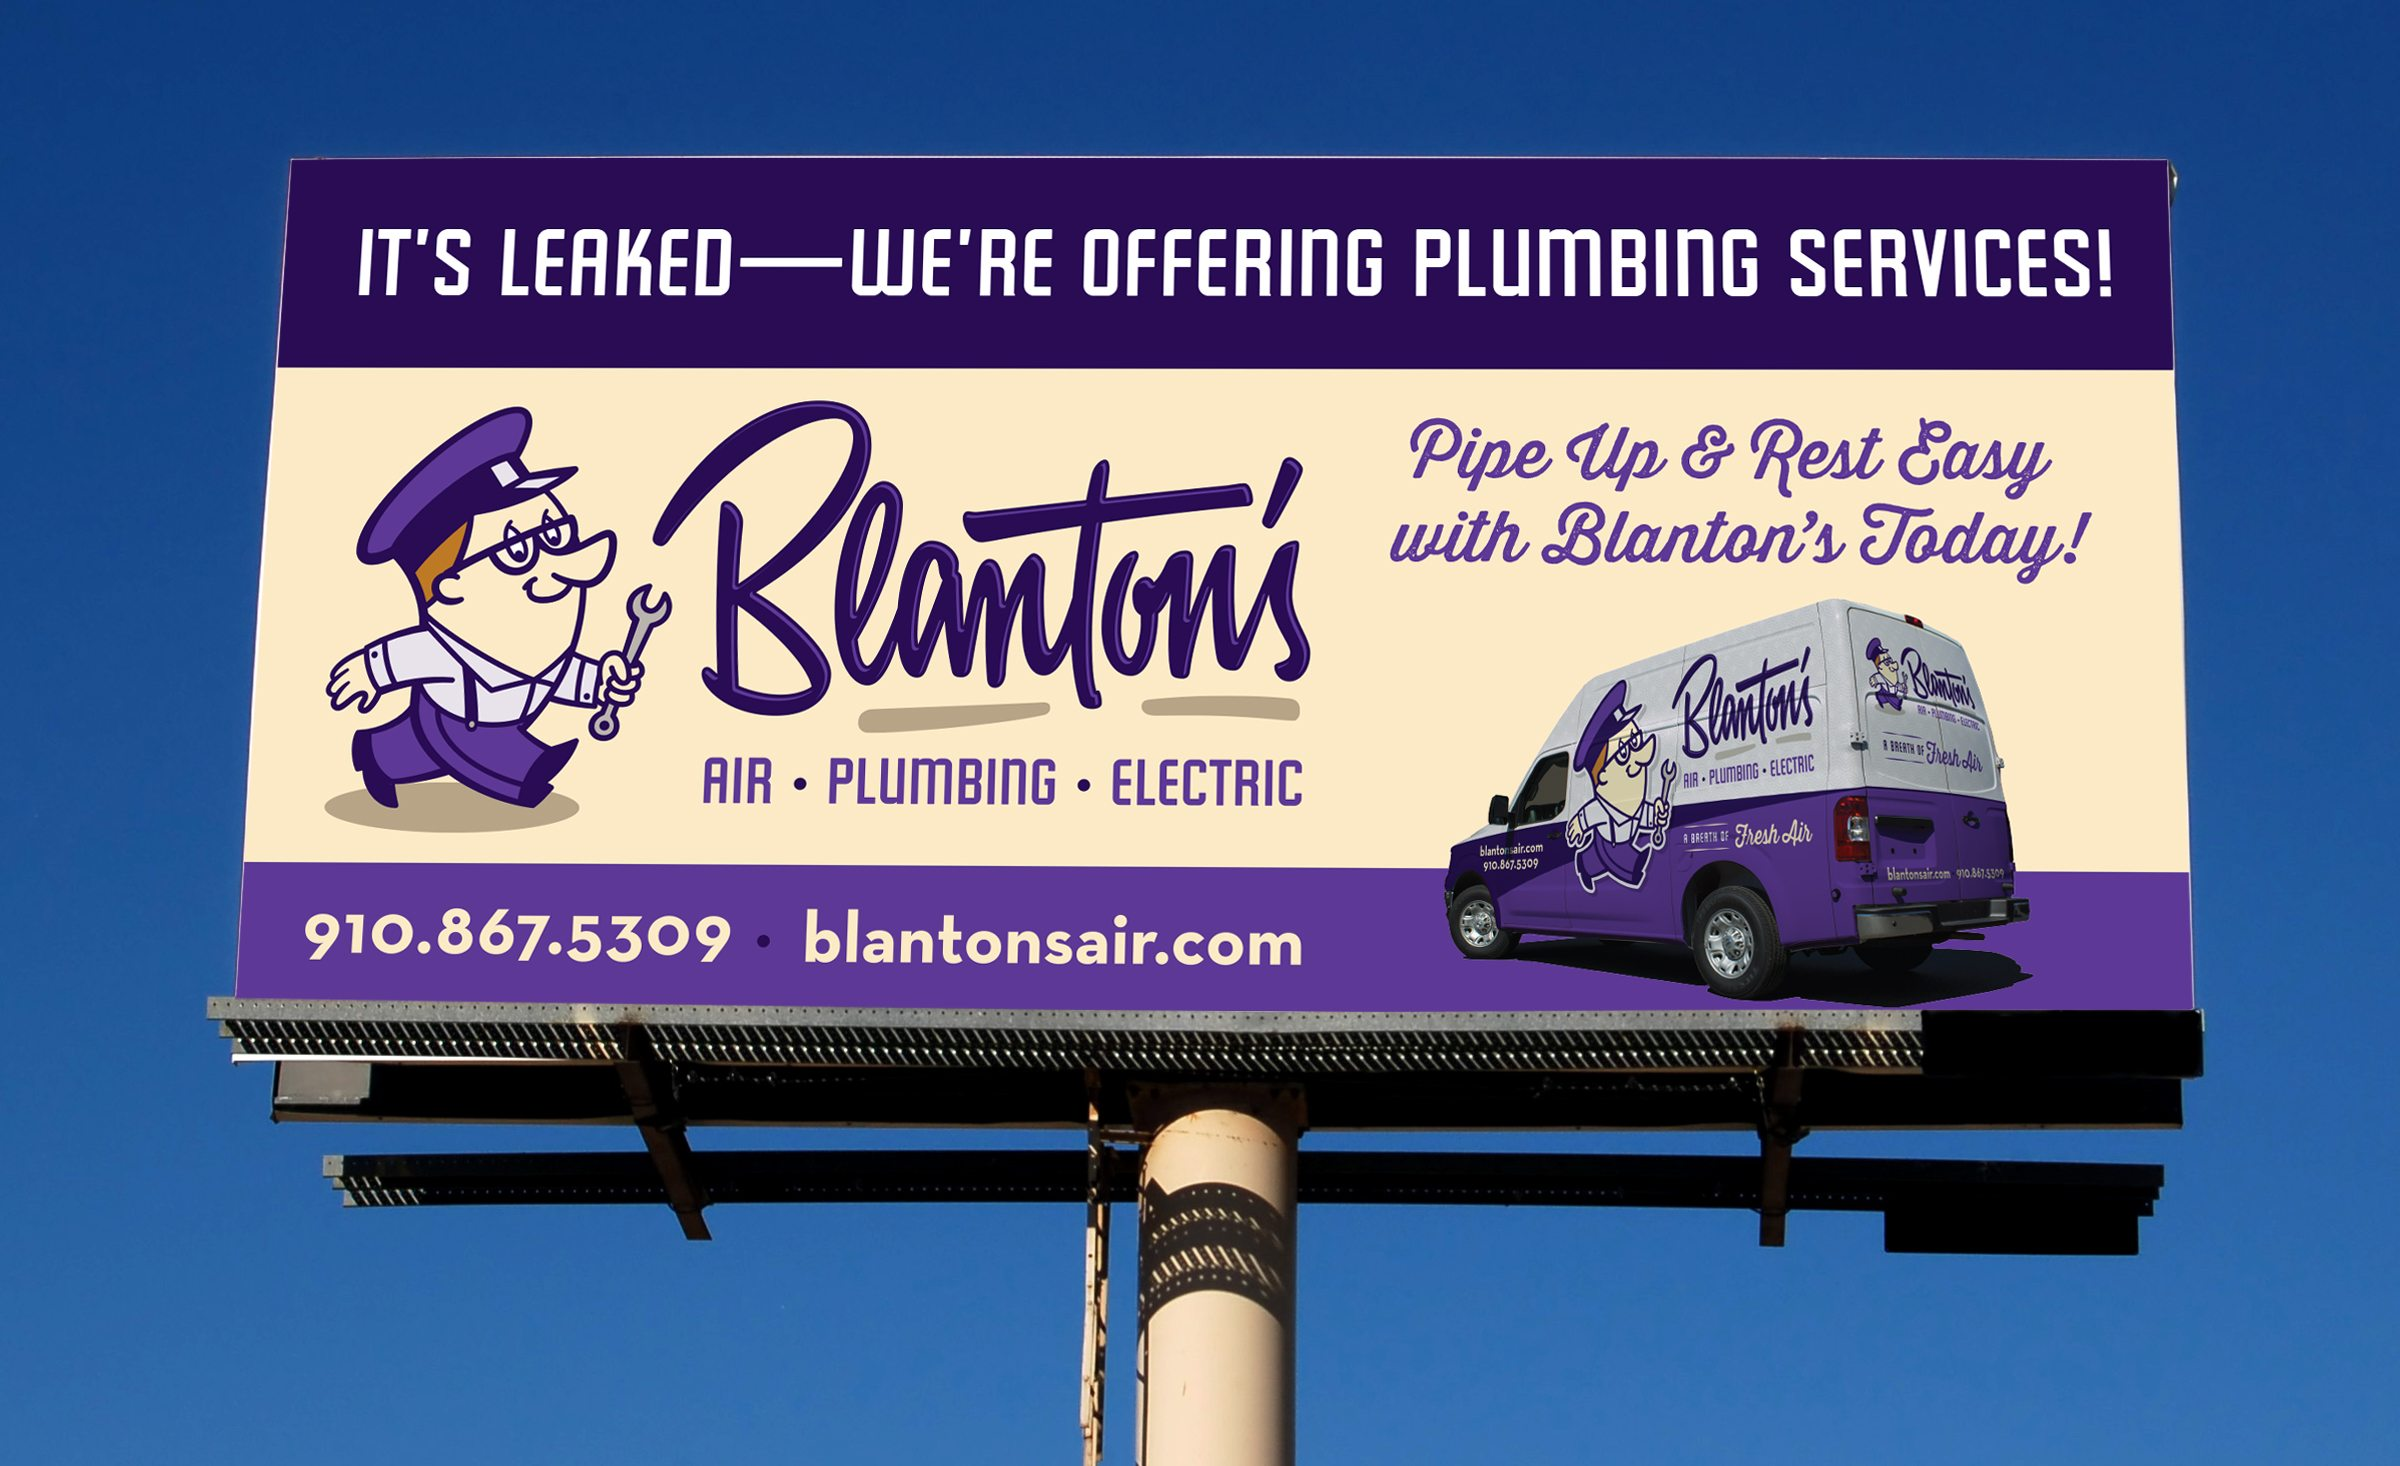 Billboard design for Blanton's Air, Plumbing & Electric.